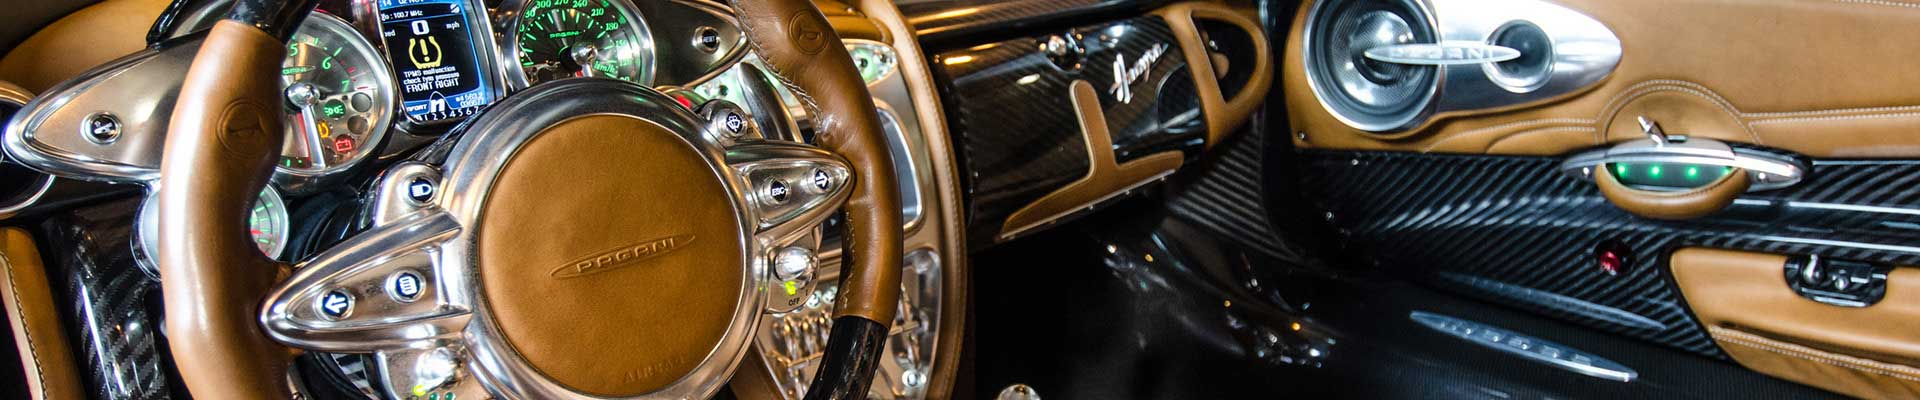 Is digital part of your automotive marketing strategy in 2015?